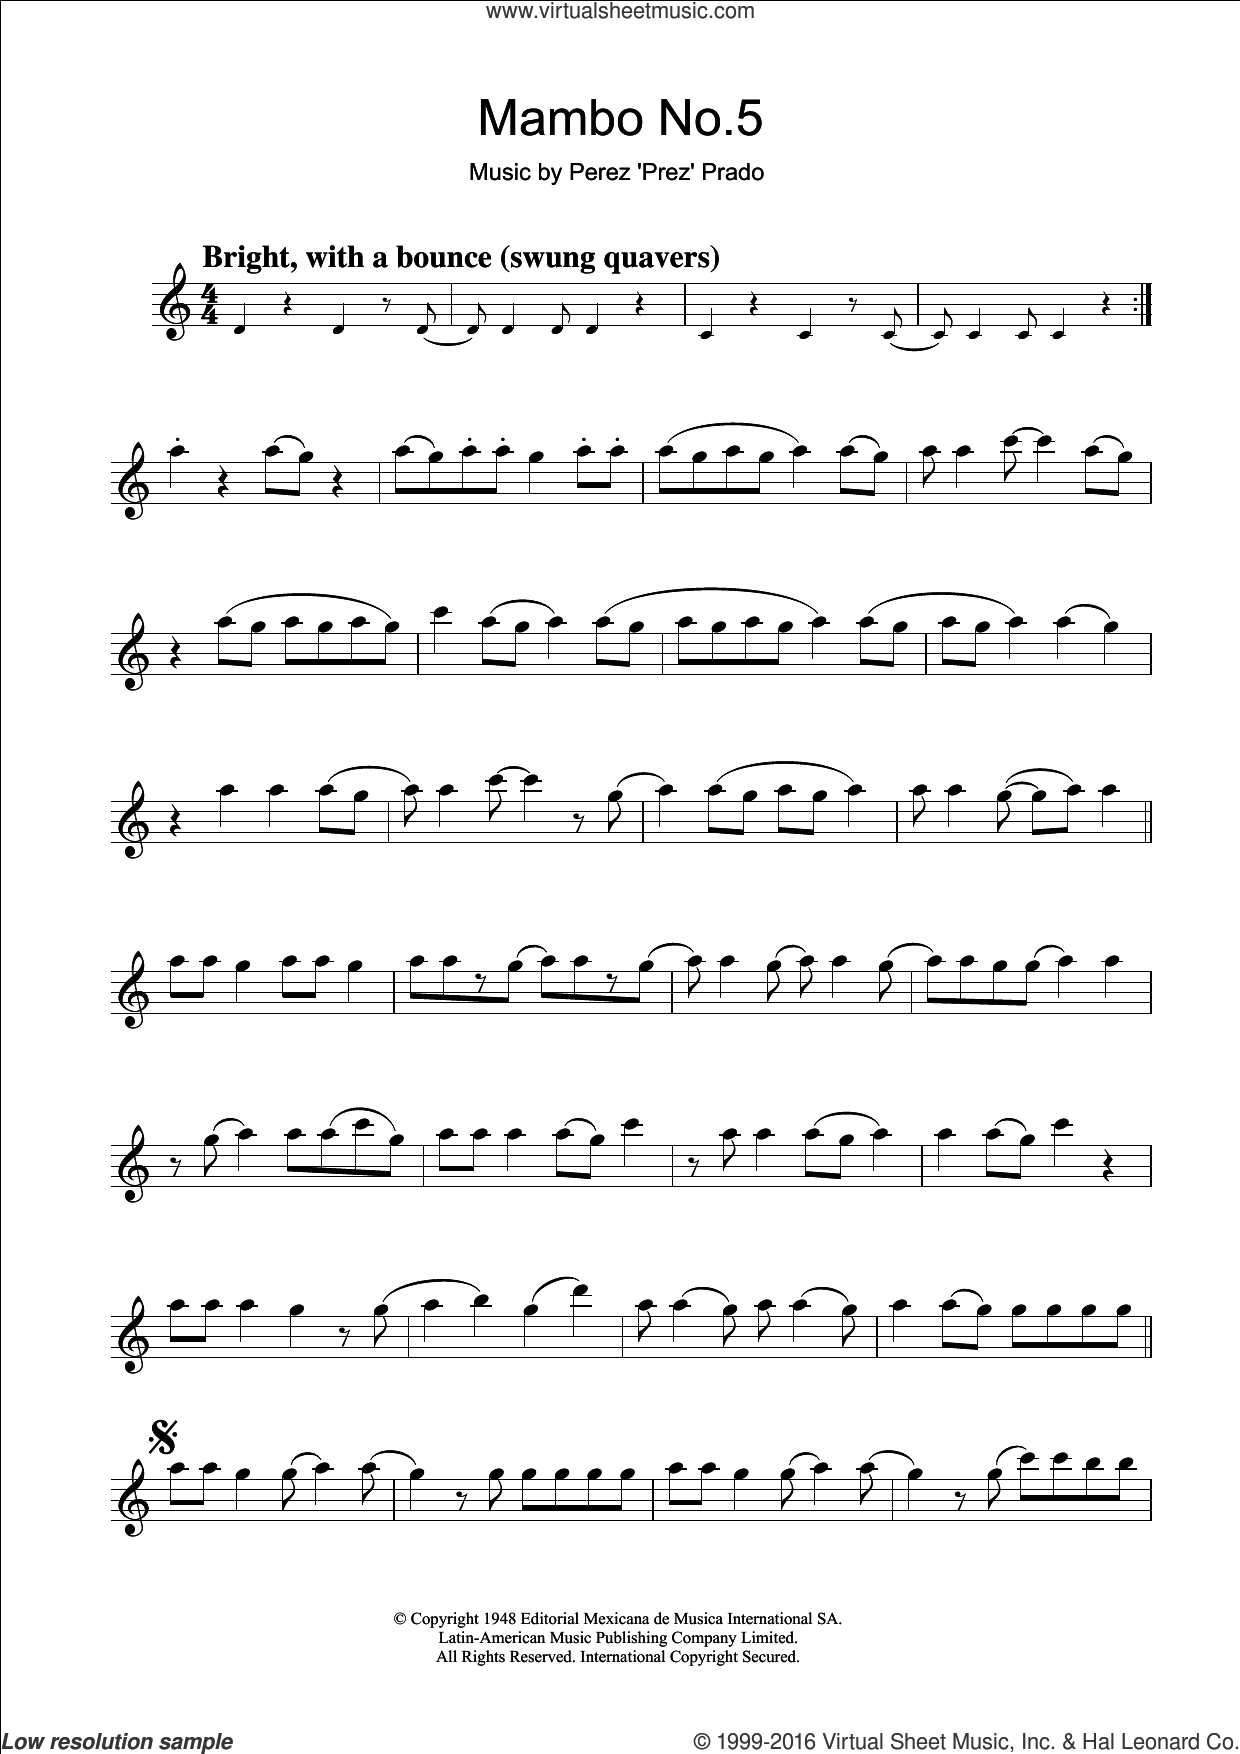 Mambo No. 5 sheet music for clarinet solo by Perez Prado, intermediate skill level